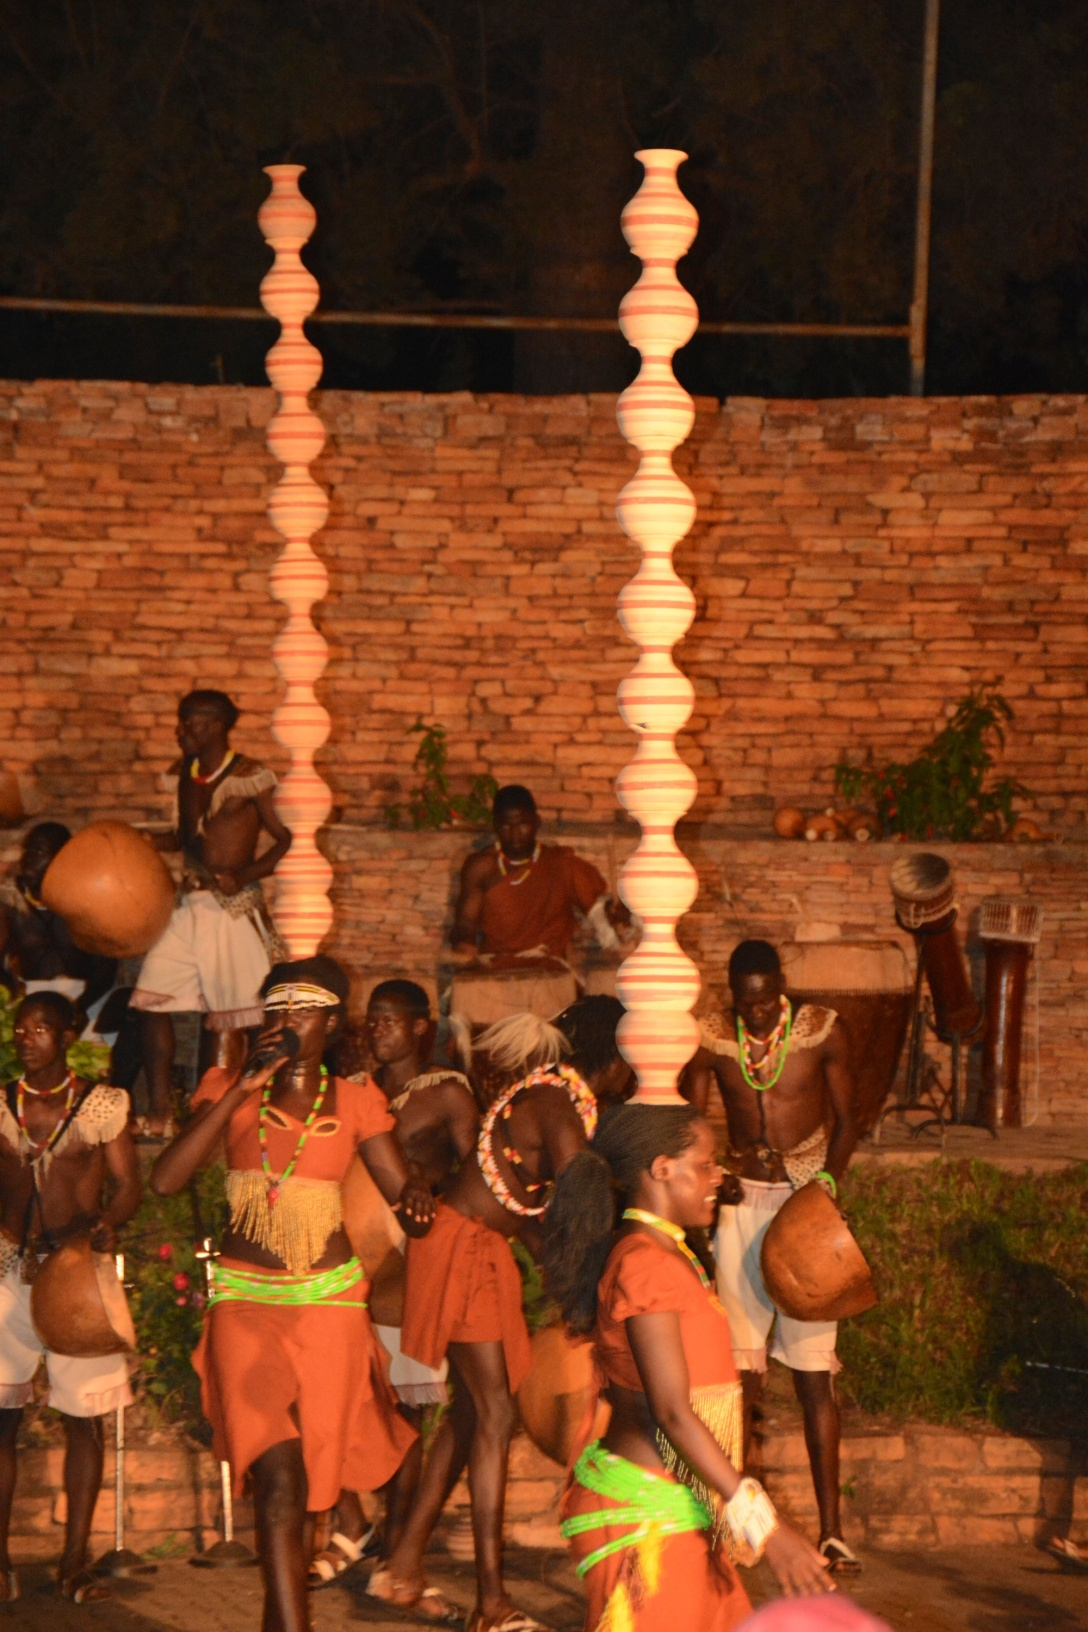 the show closes with ladies adding clay pots to their heads and dancing. They still shake the hips and climb stairs with ten pots on their heads!